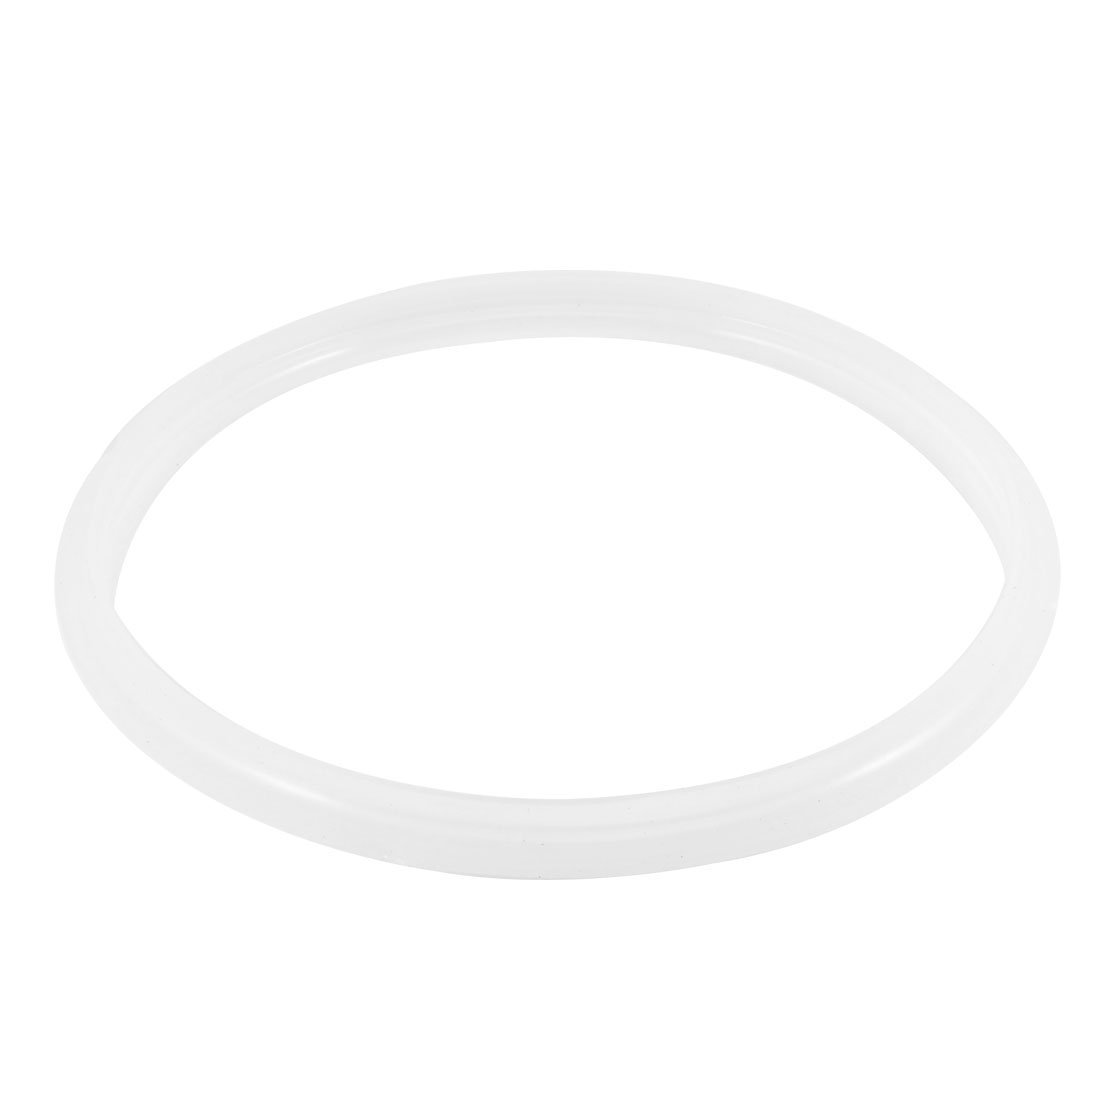 Amazon.com: Silicone Sealing Ring Replacement for Pressure Cooker 8.5 Inch Dia: Kitchen & Dining